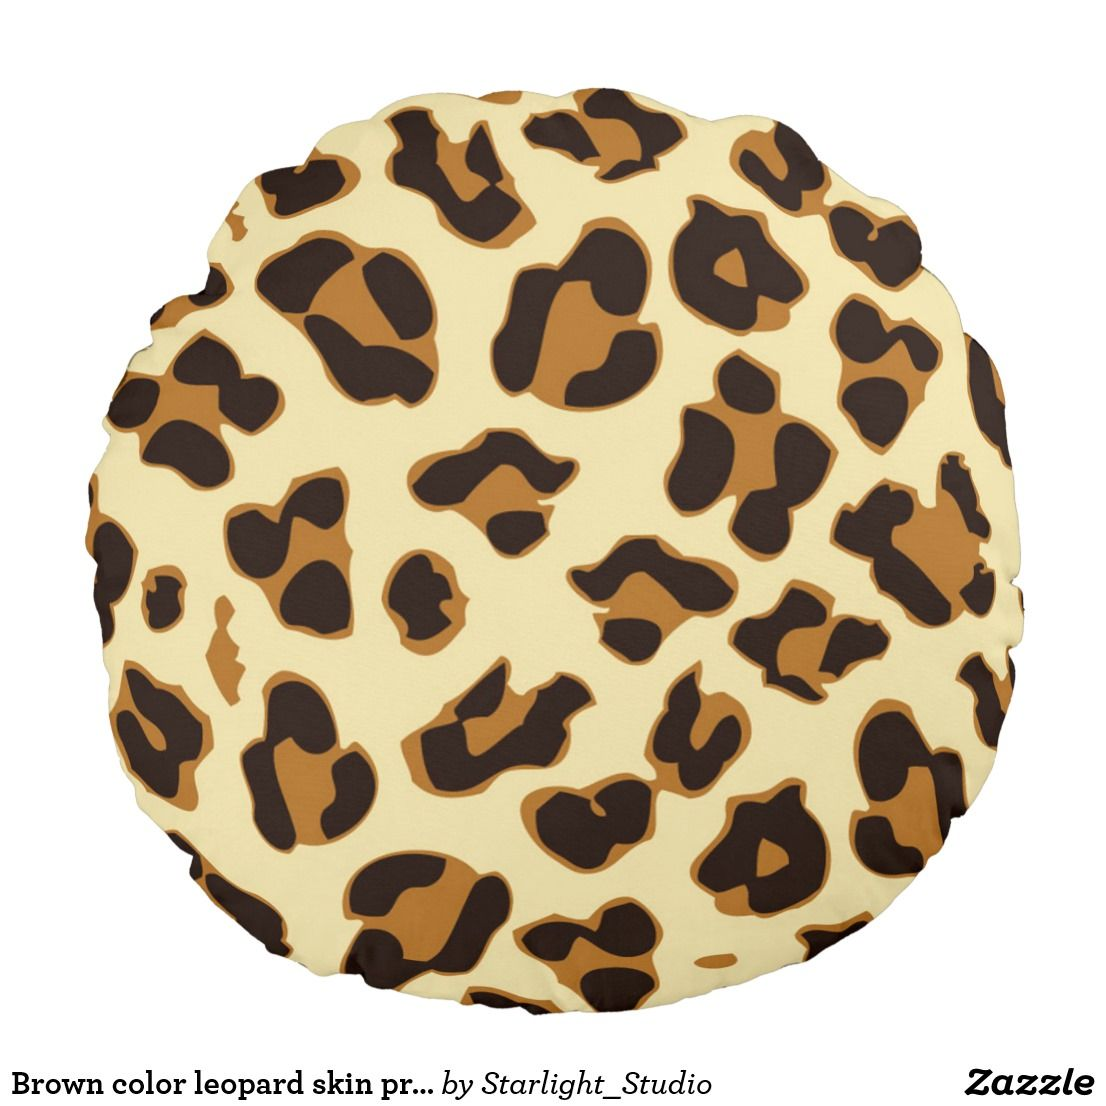 Leopard Print Iphone Wallpaper: Brown Leopard Skin Print Round Pillow